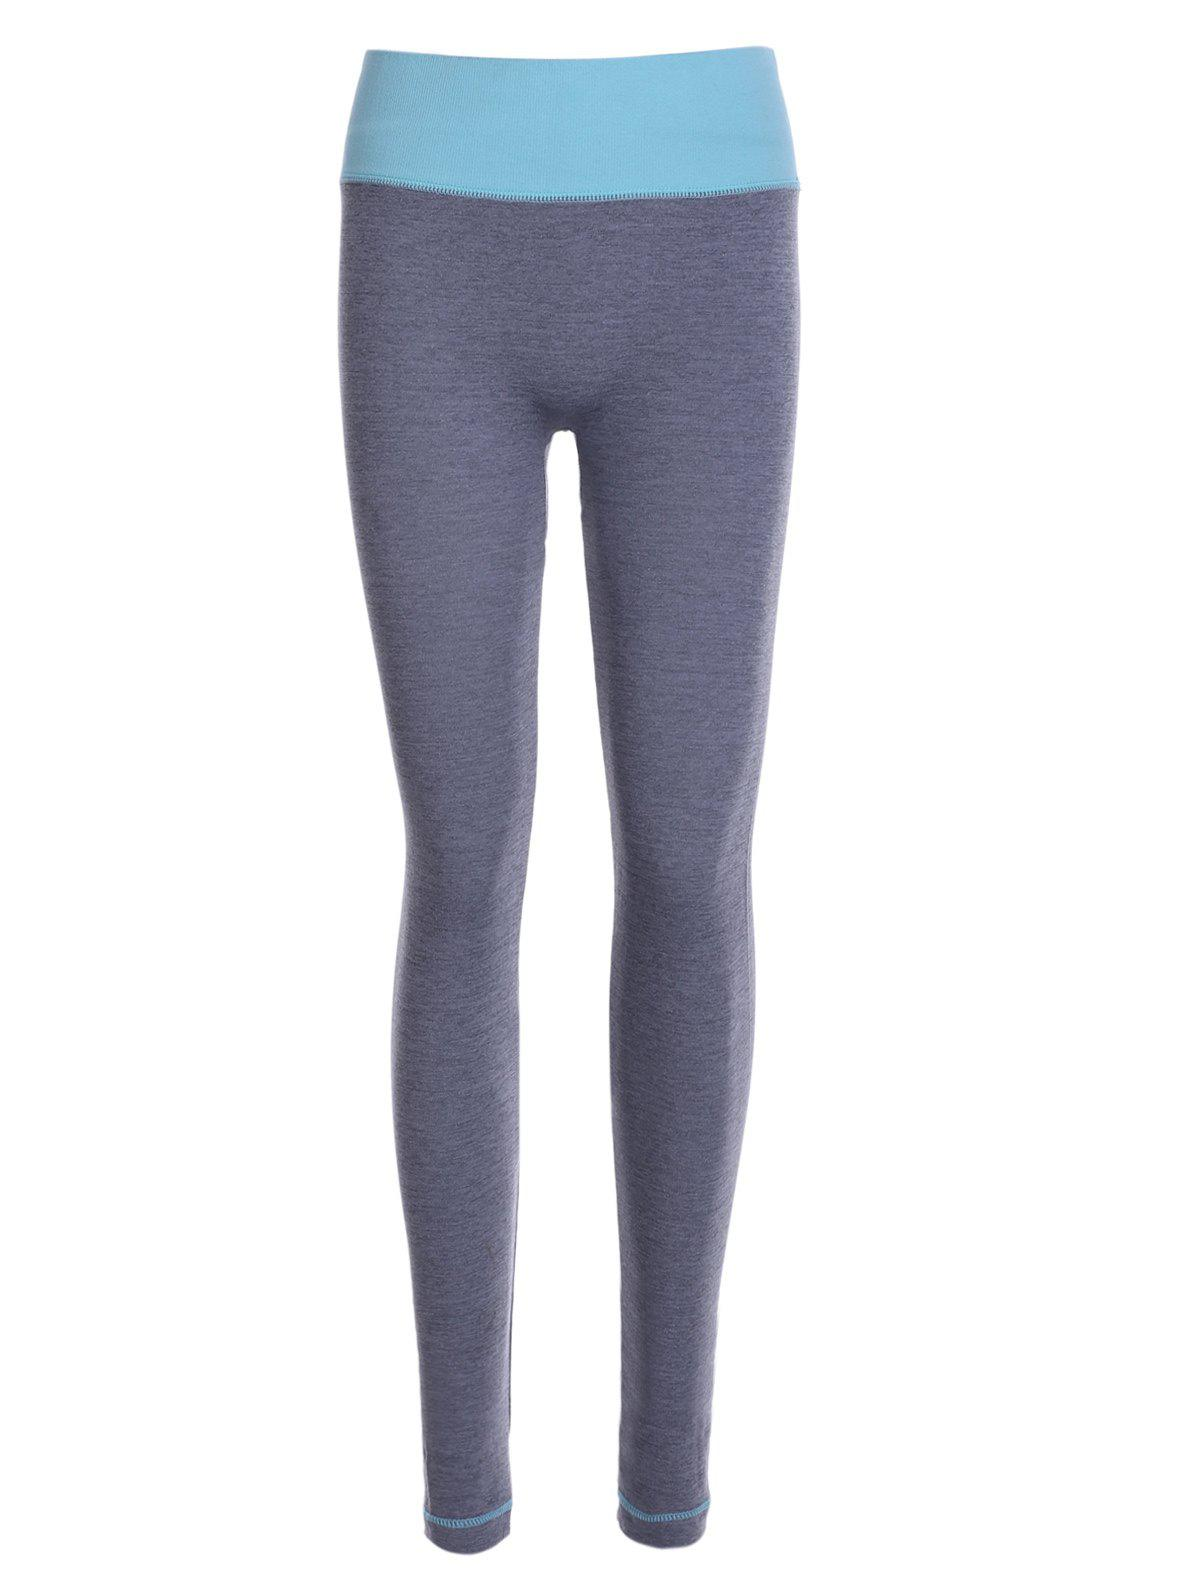 Trendy Skinny Hit Color Sport Leggings For Women - LIGHT GRAY ONE SIZE(FIT SIZE XS TO M)